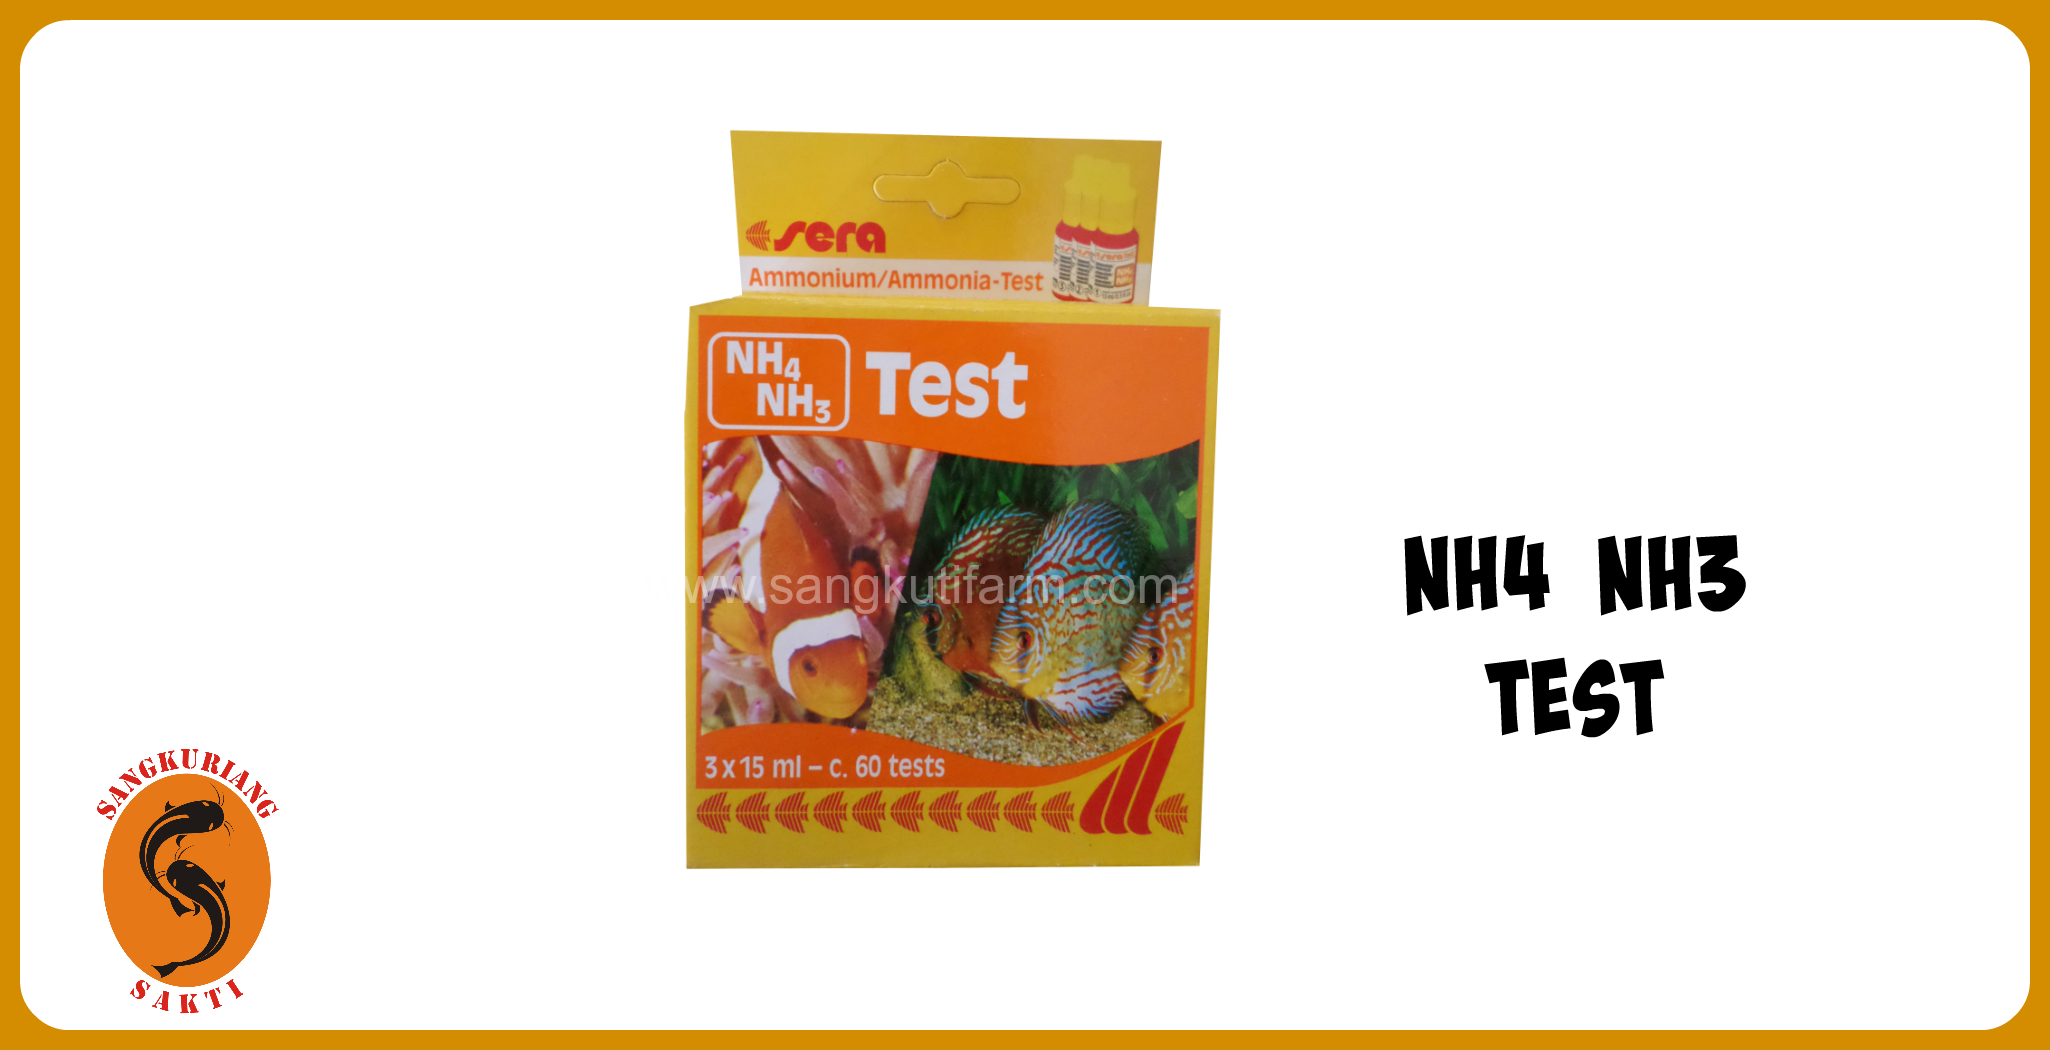 jual nh4 nh3 test